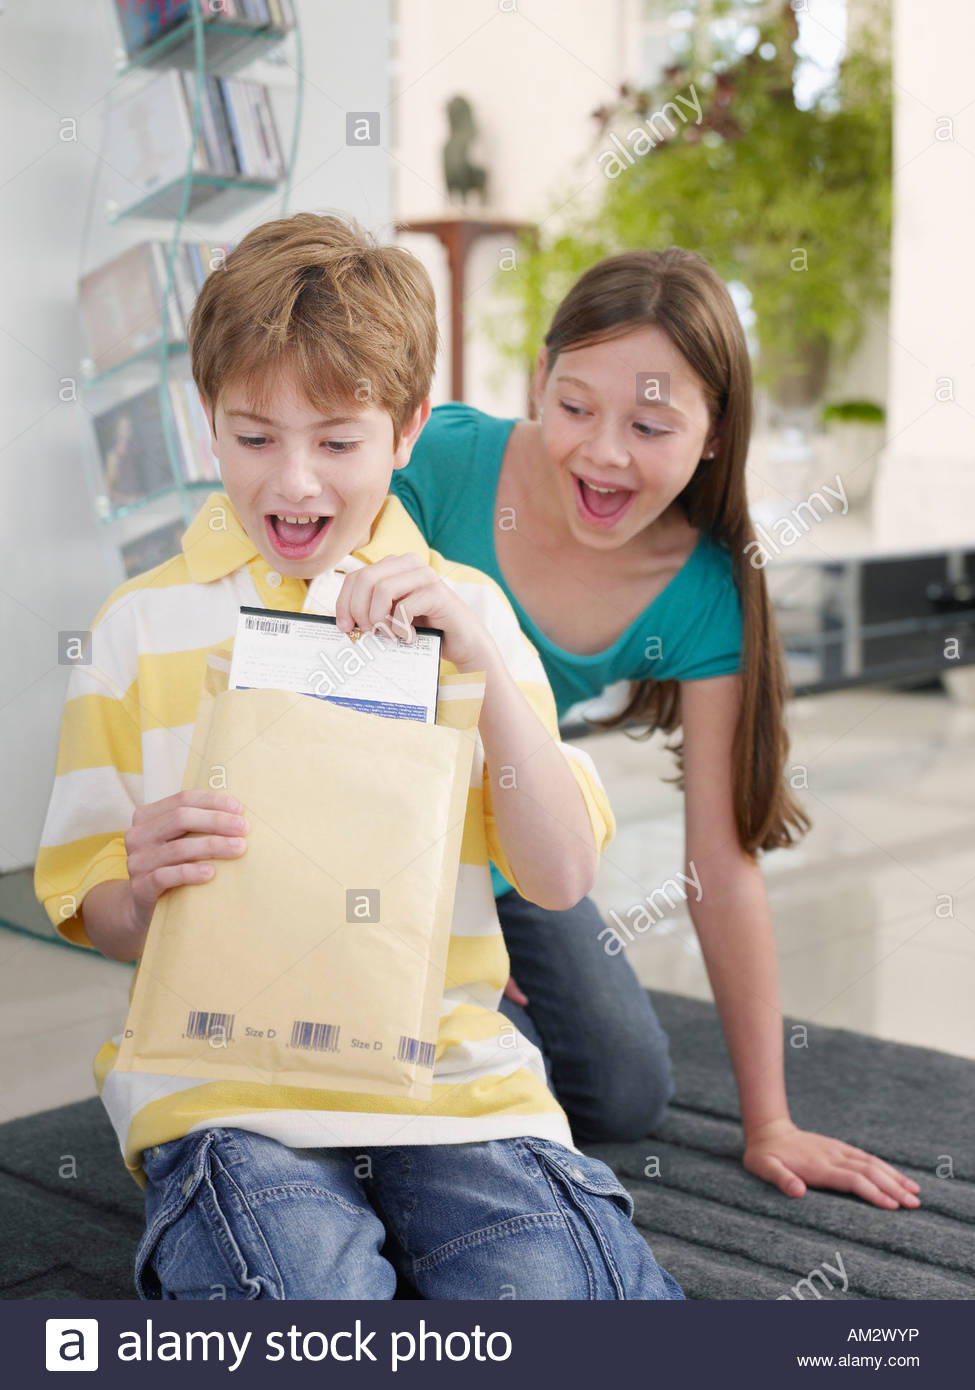 Young boy opening package while girl watches - Stock Image